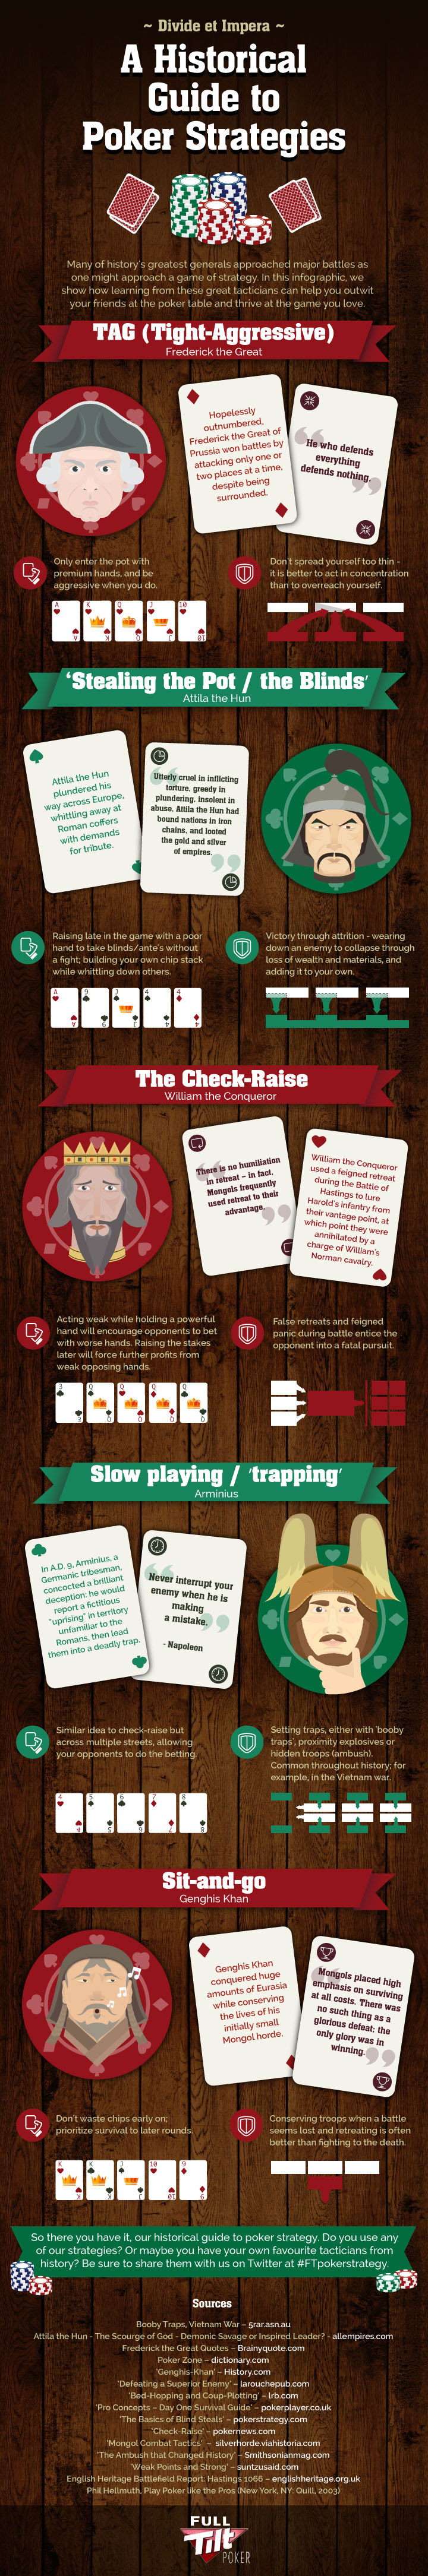 Infographic: A Historical Guide to Poker Strategies #infographic